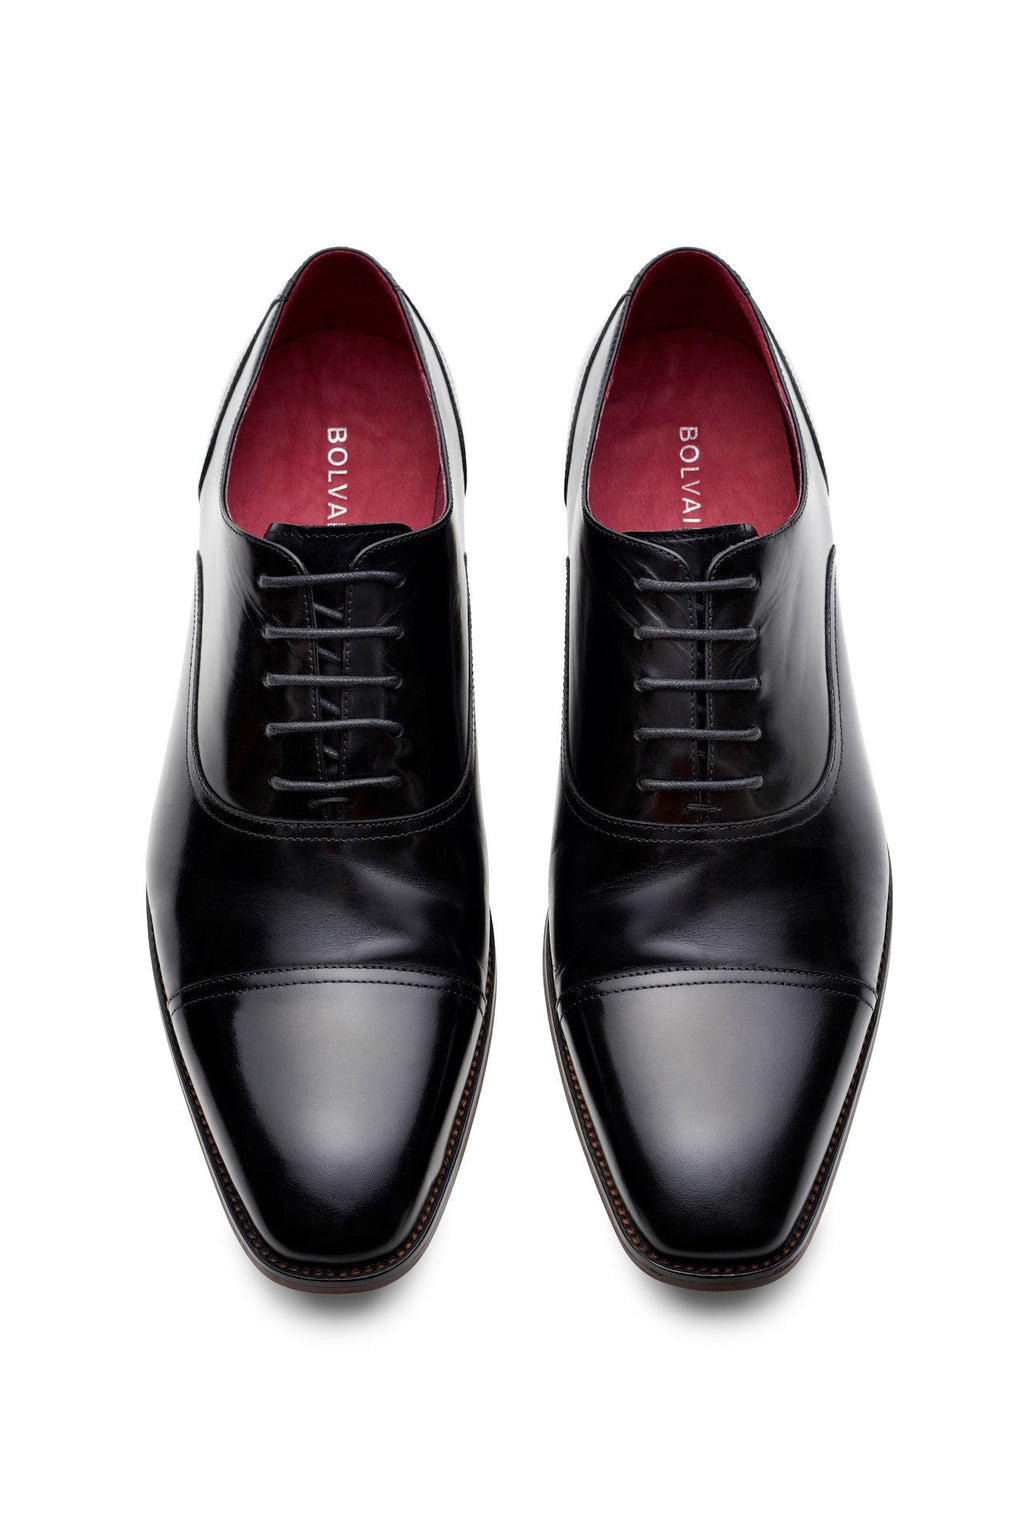 Bolvaint The Verrocchio Dress Shoe in Black Calfskin